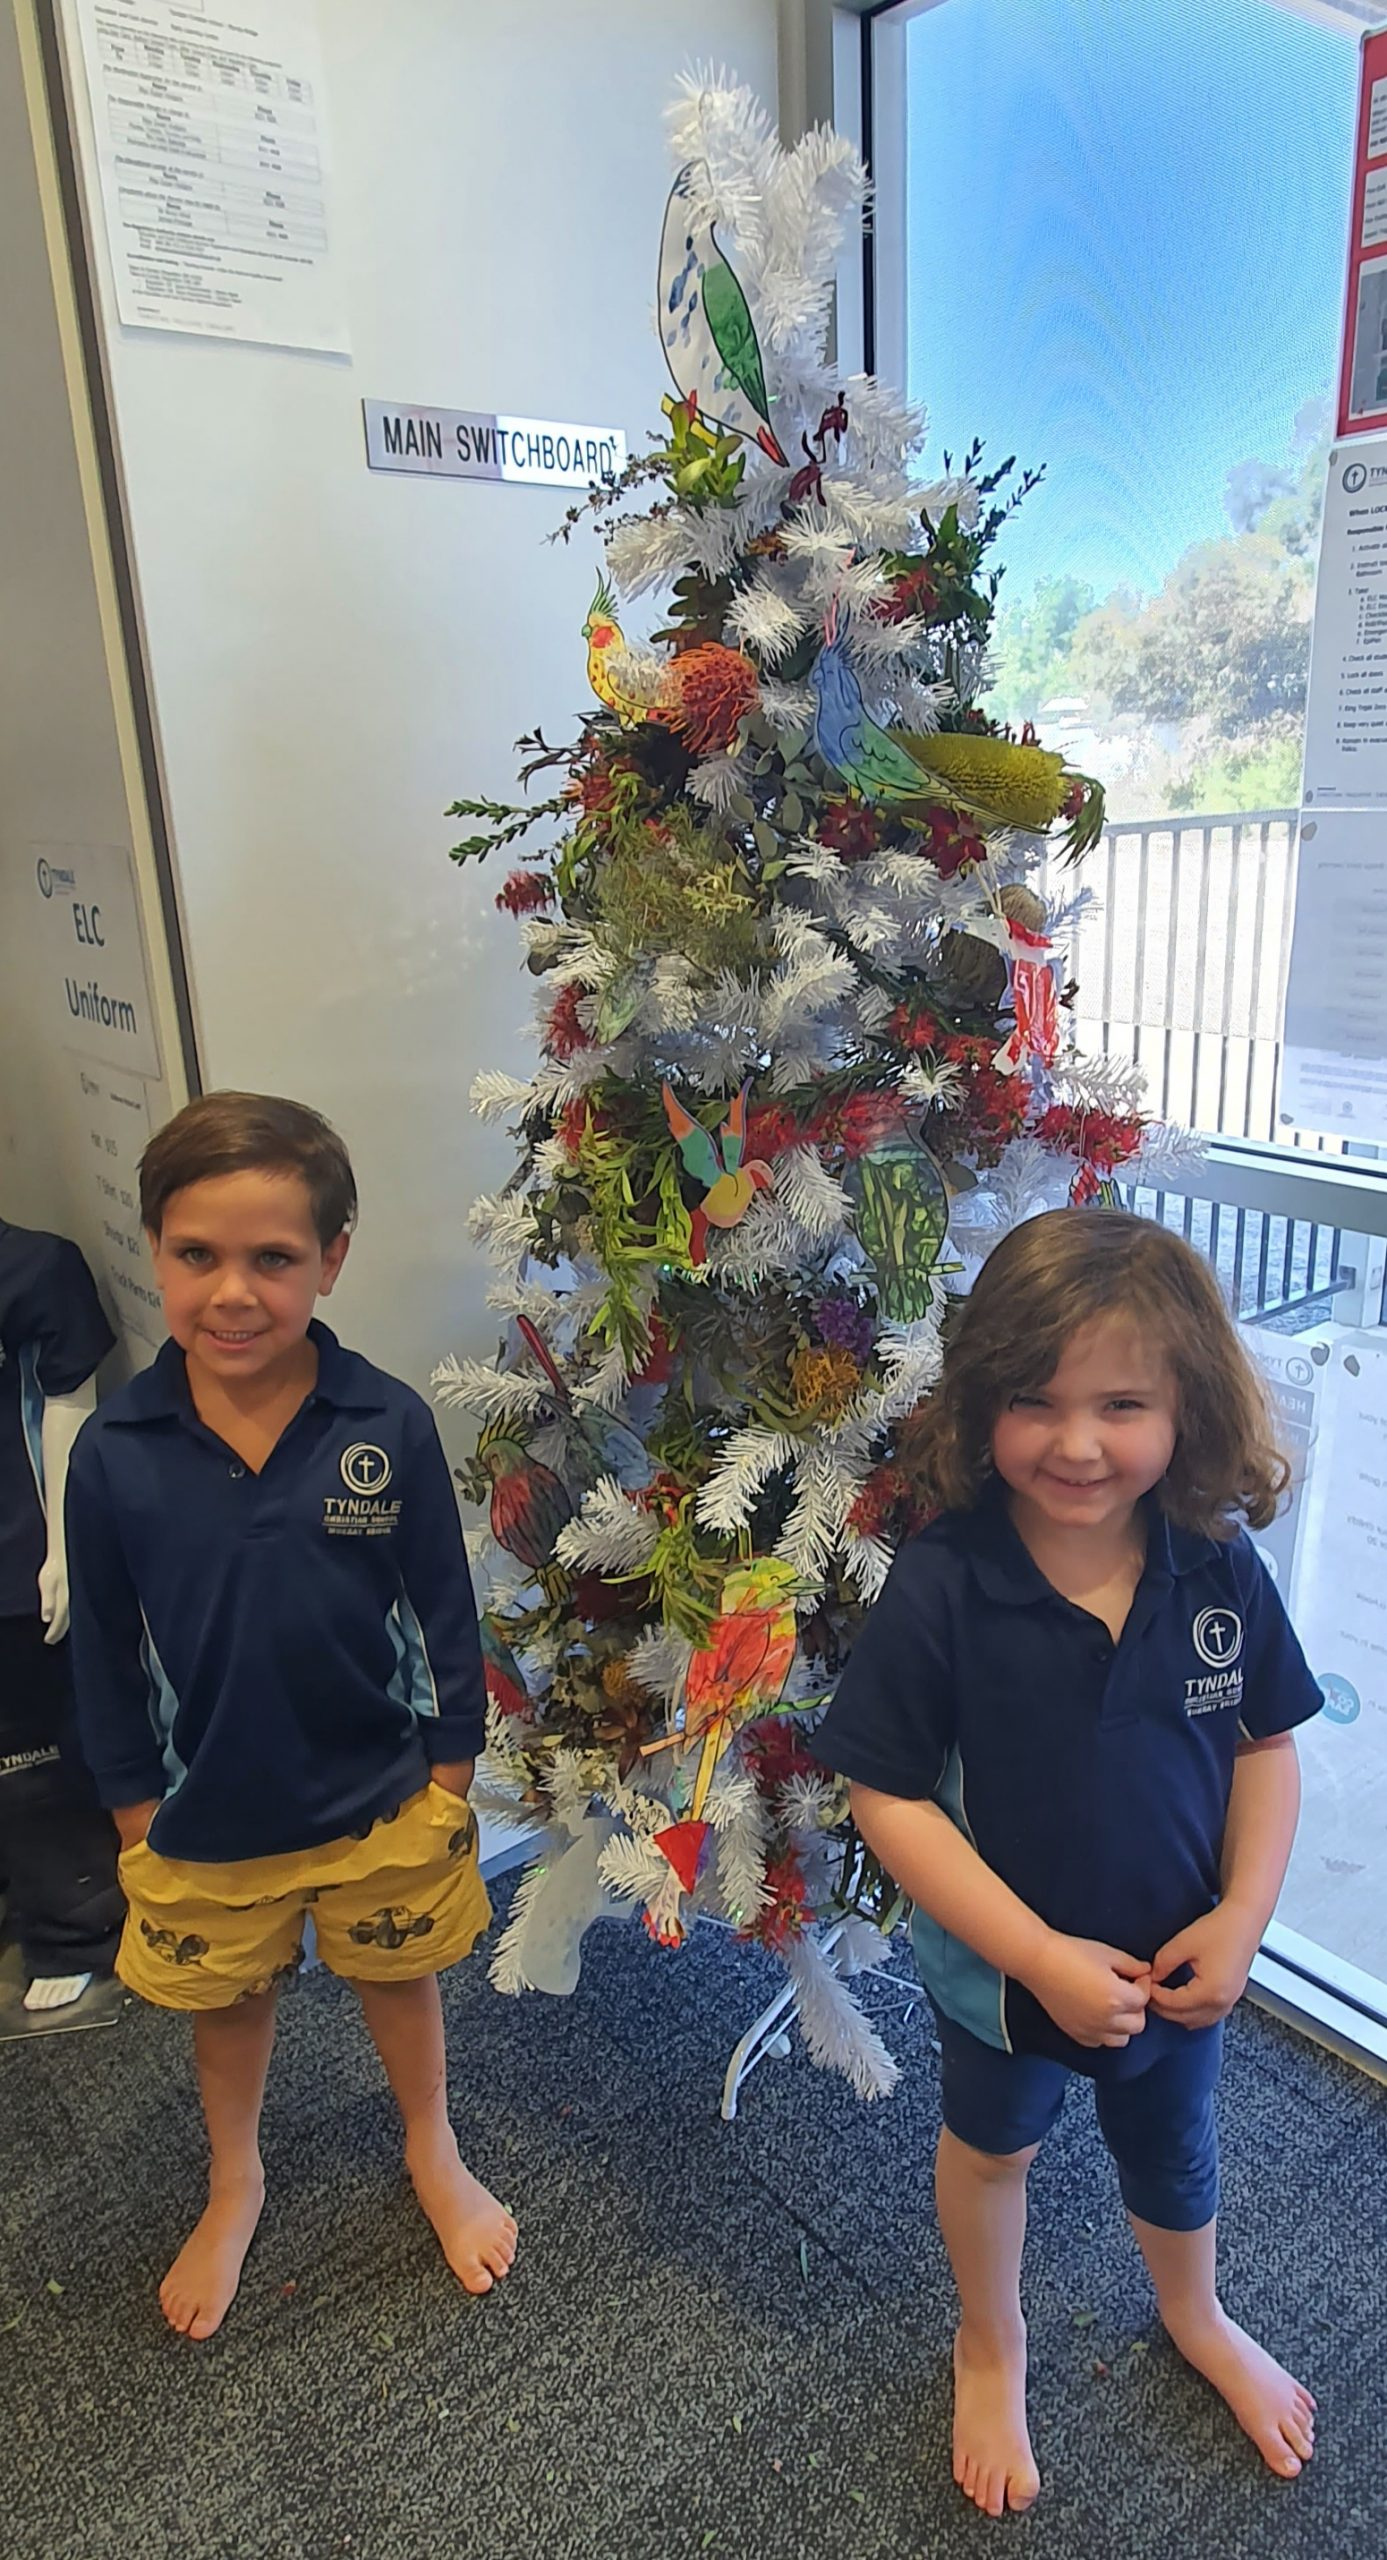 WORKING TOGETHER: Daniel and Alexis at the Tyndale Christian School enjoyed decorating a Christmas tree with other children as part of the ac.care Murraylands Communities for Children initiative.